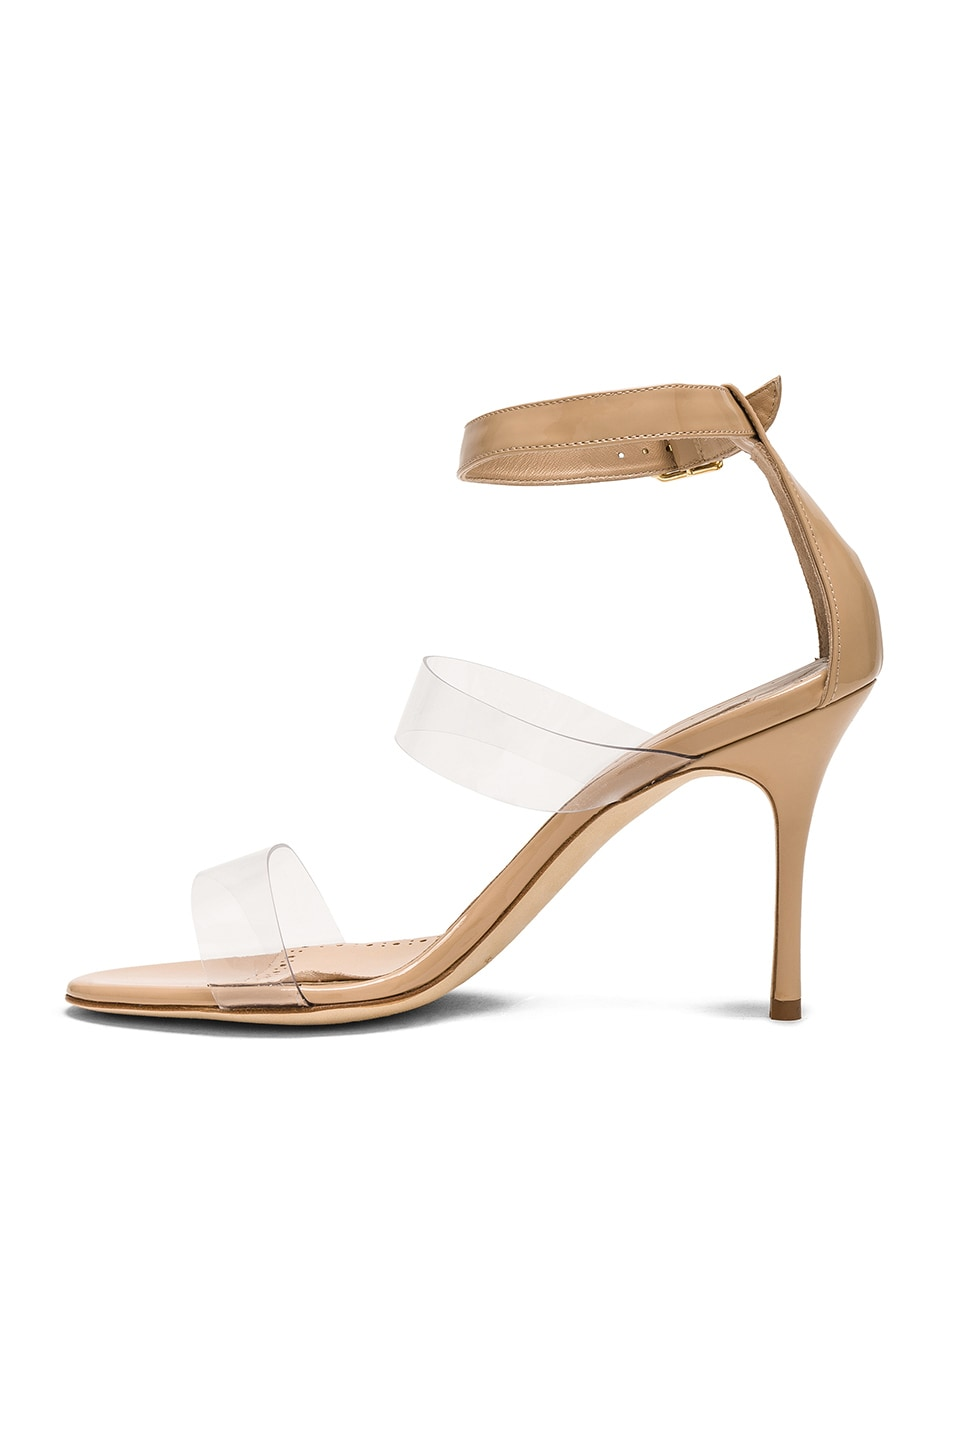 Image 5 of Manolo Blahnik Patent Leather & PVC Kaotic 90 Sandals in Nude Patent & Clear PVC